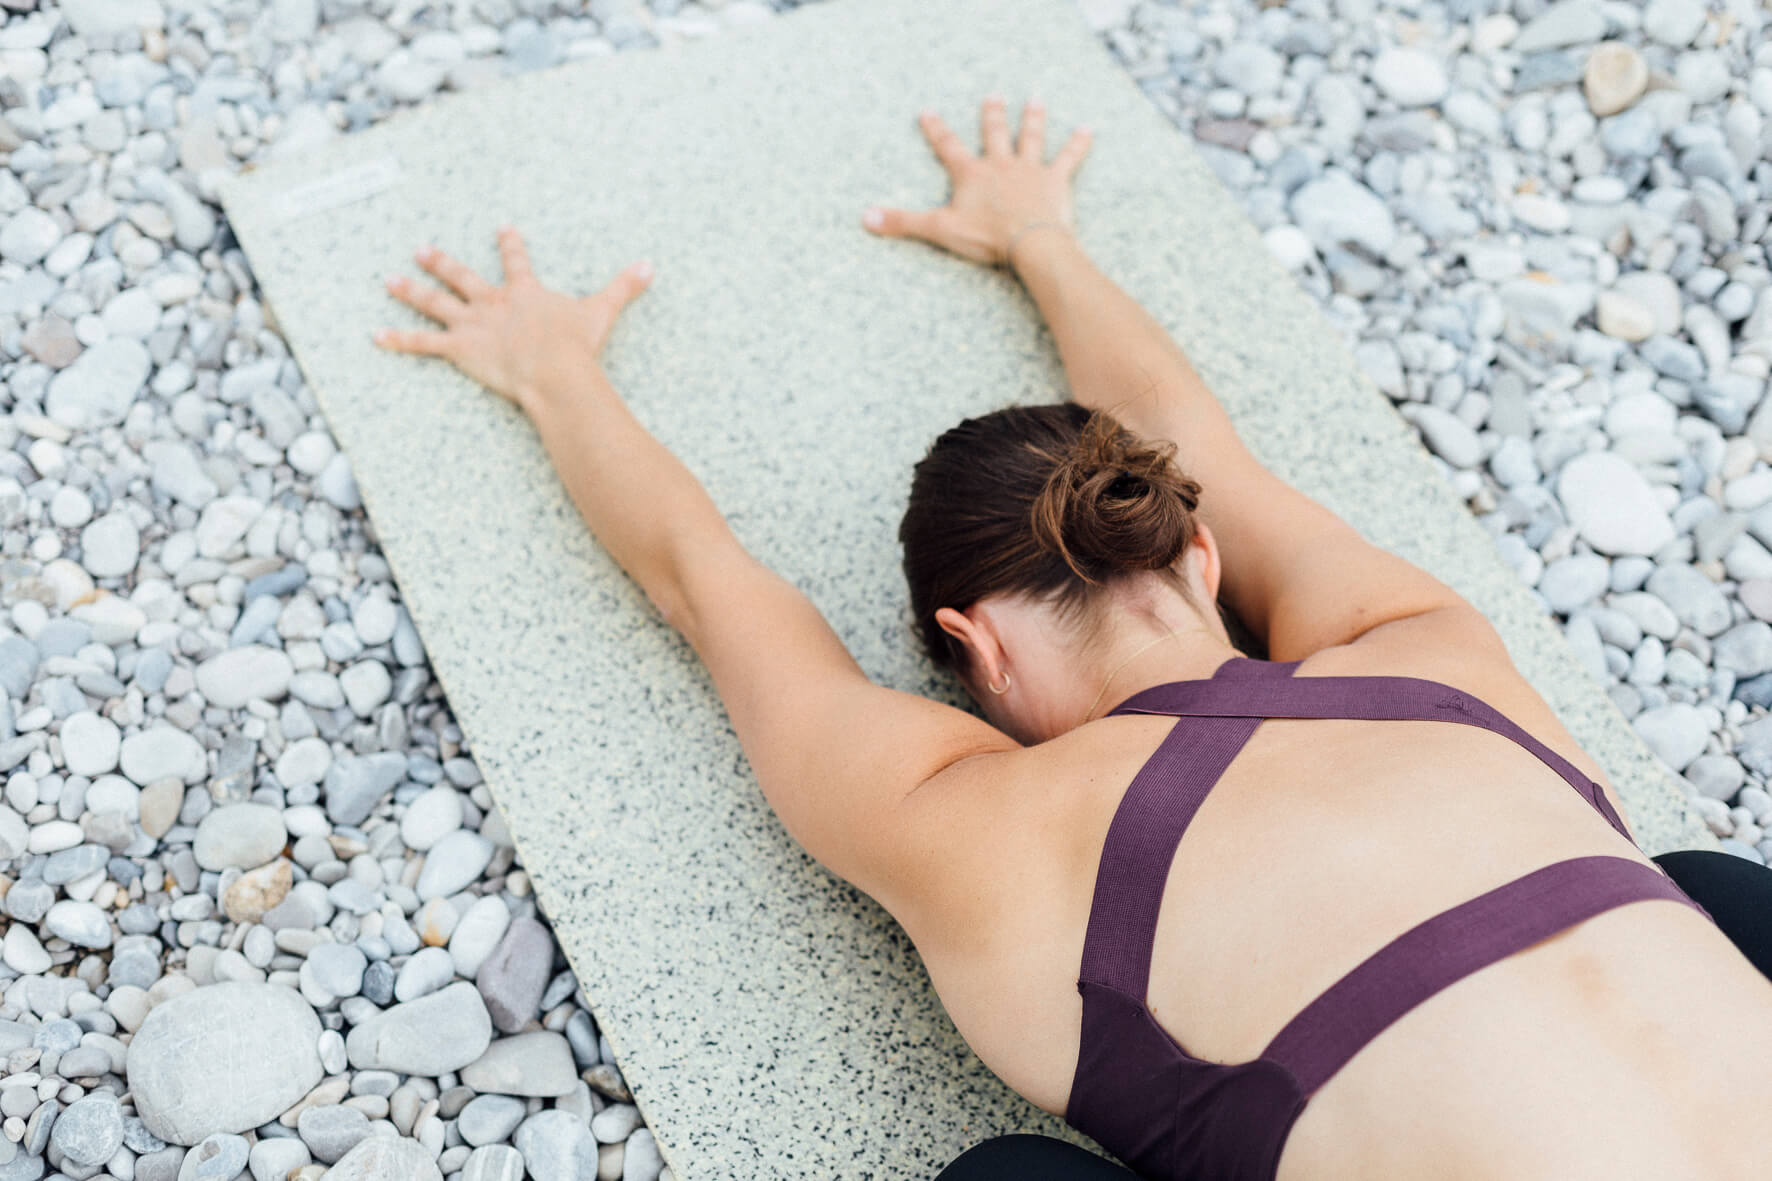 Kale&Cake Magazine Why a slipped disc can be the best teacher